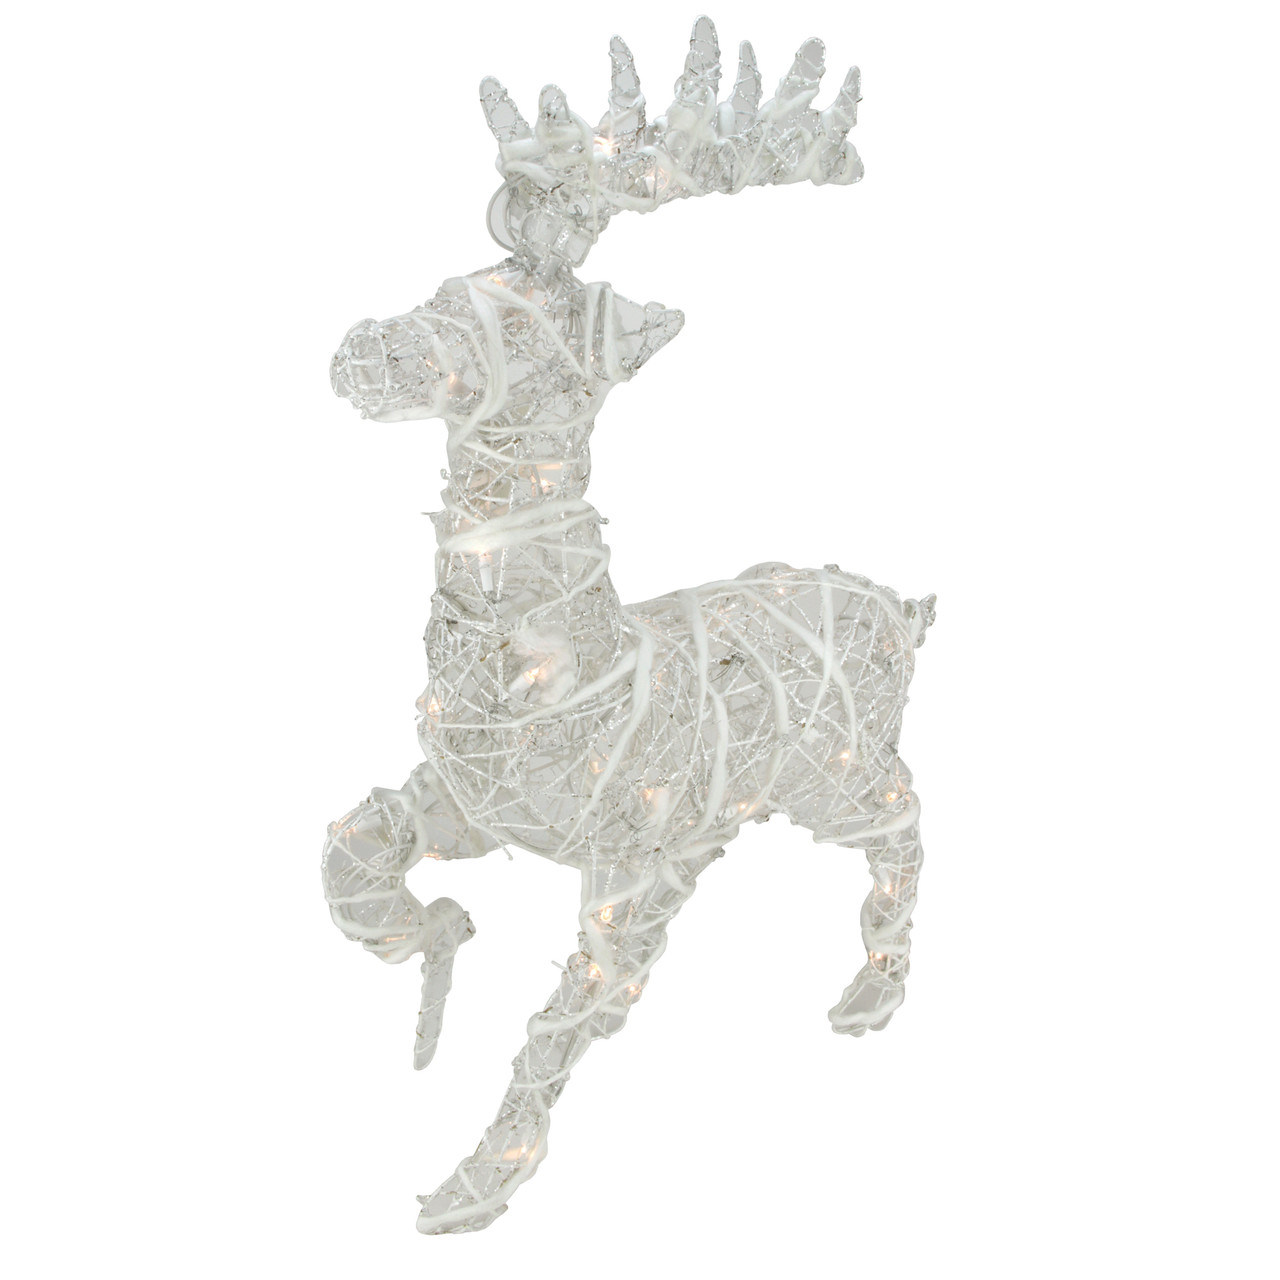 30 Lighted White Glittered Rattan Reindeer Outdoor Christmas Decoration 31457922